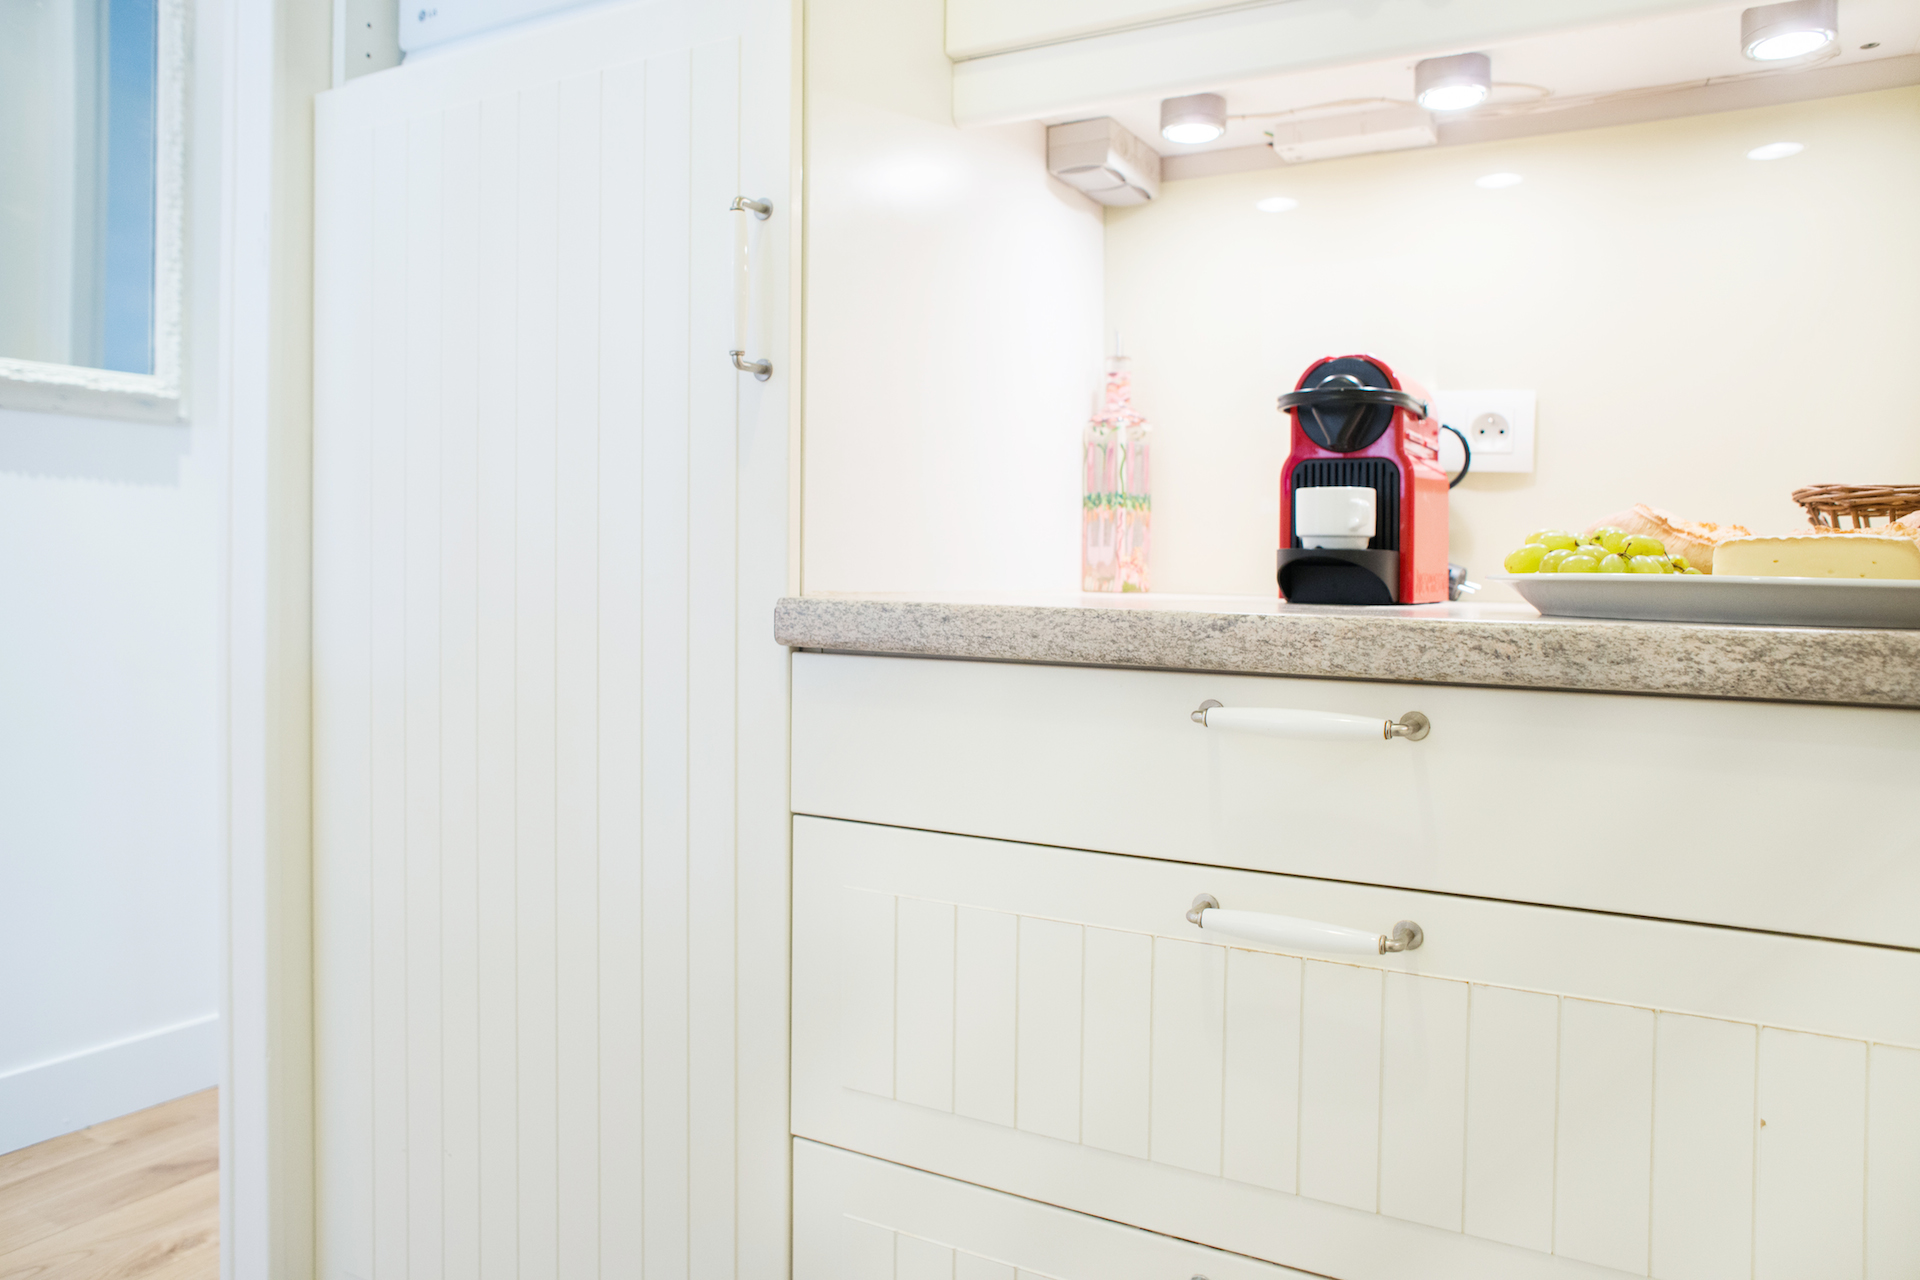 Fully equipped kitchen with modern appliances in the Vougeot vacation rental offered by Paris Perfect